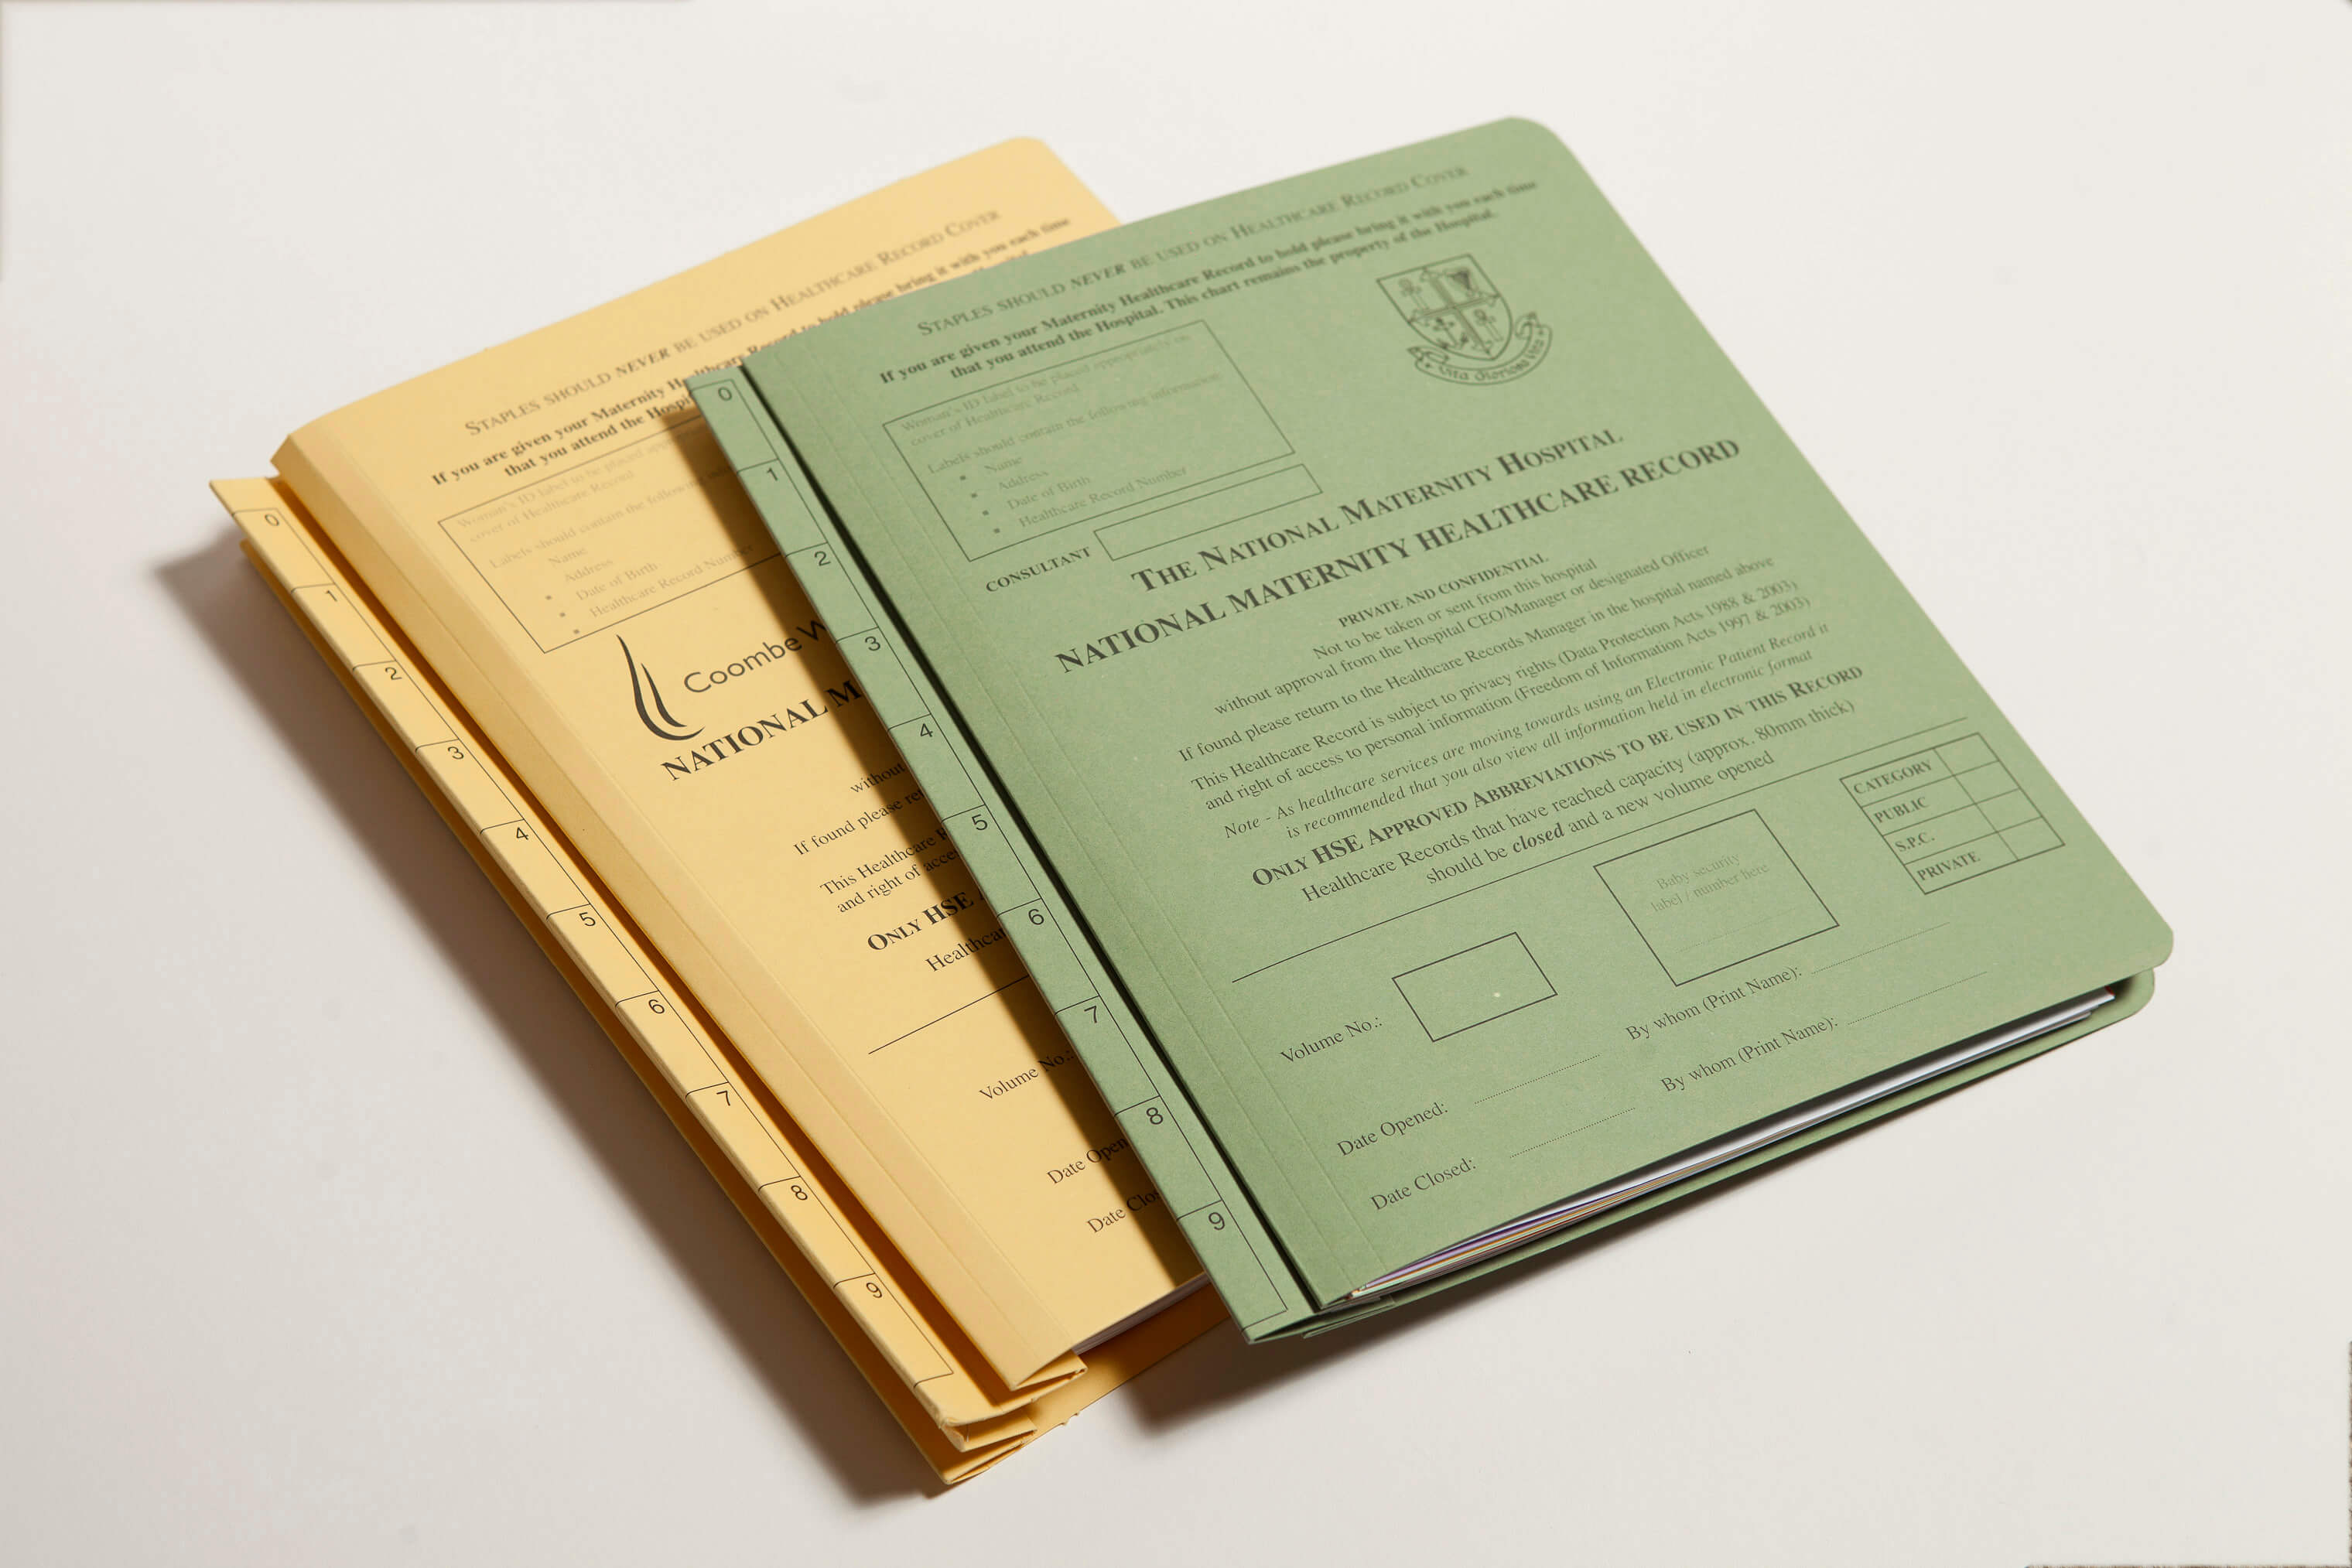 printed medical file covers